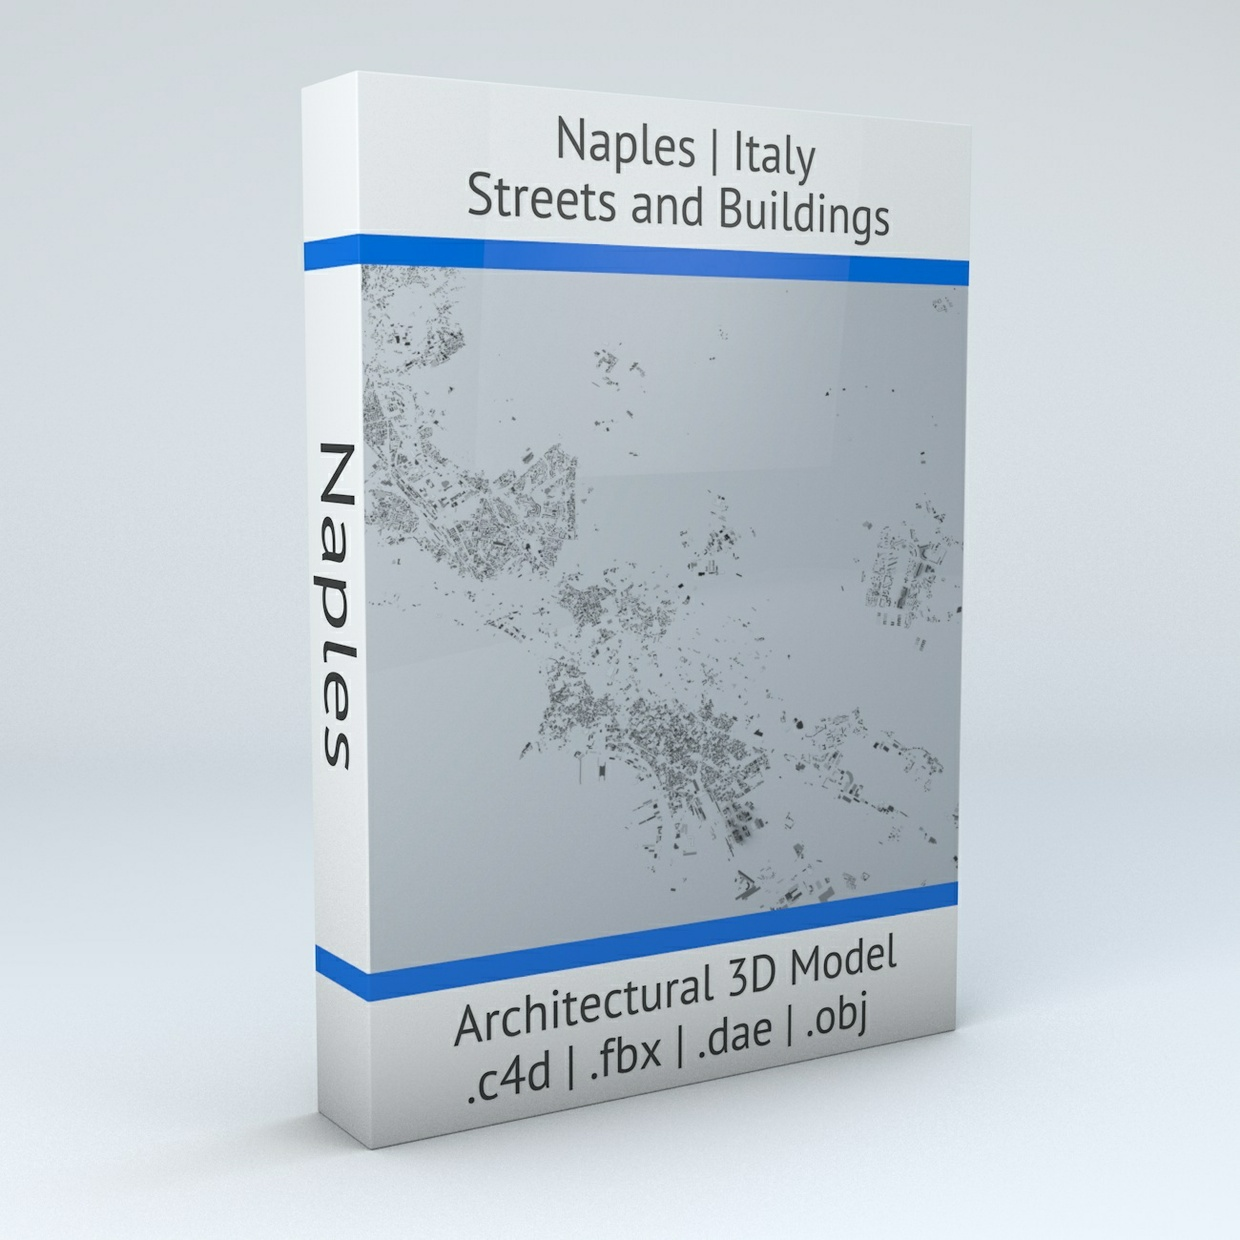 Naples Downtown Area and Scampia Streets and Buildings Architectural 3D Model